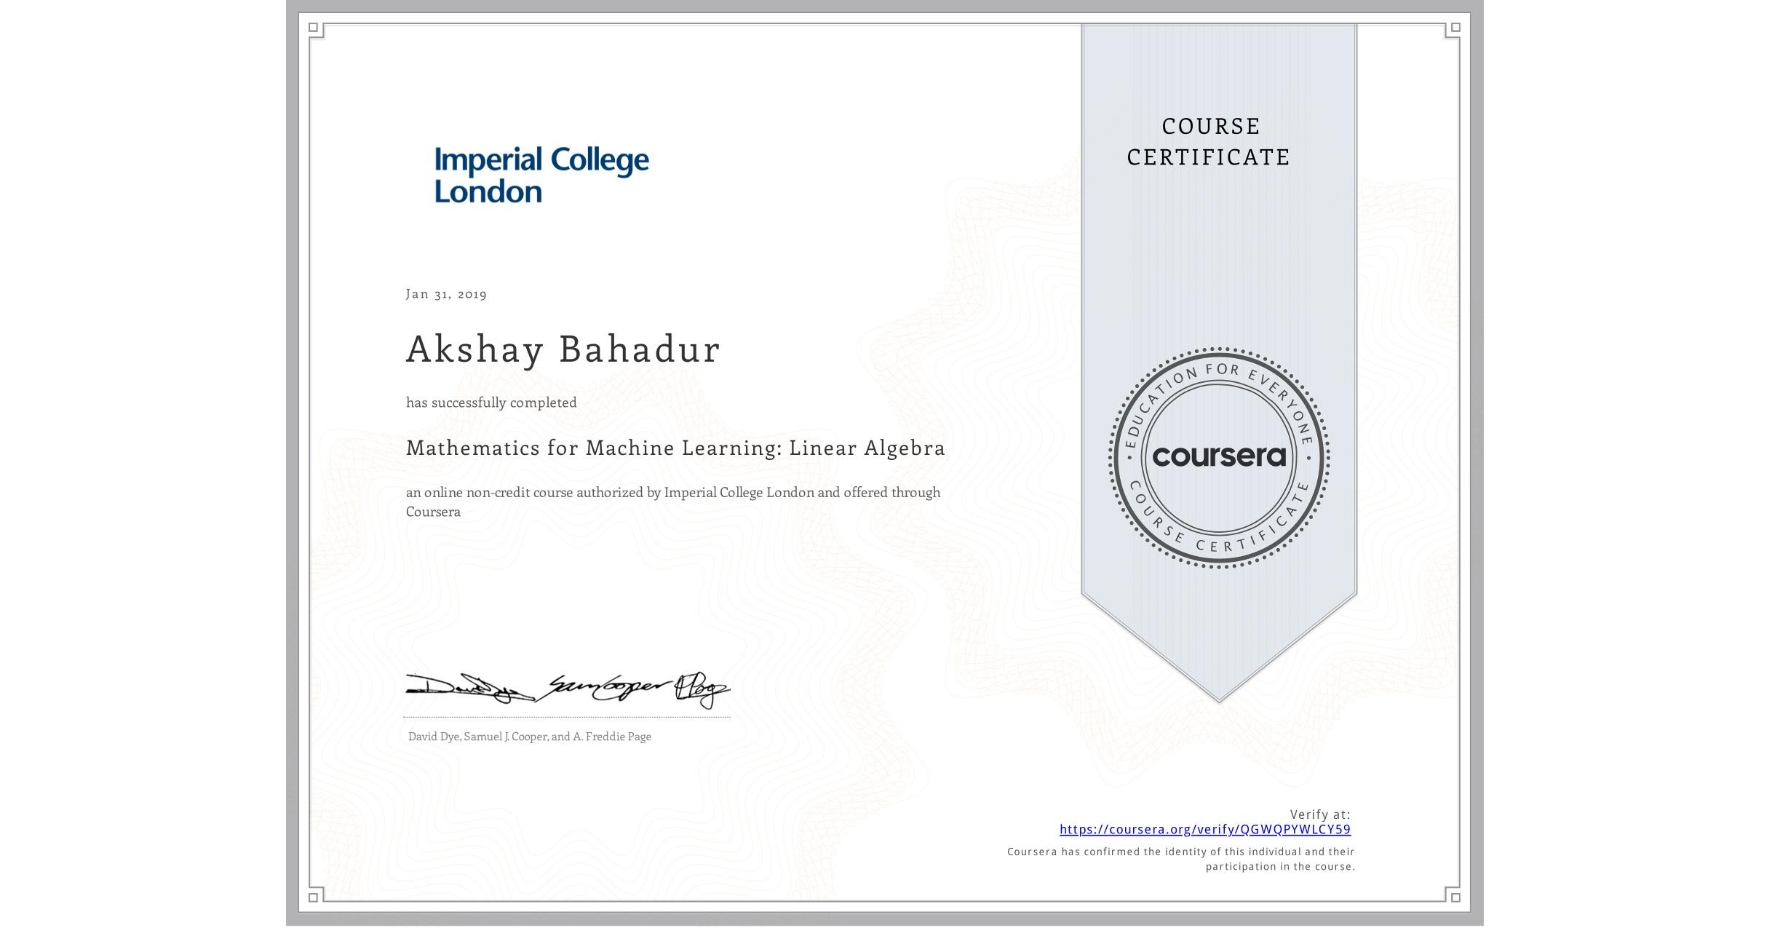 View certificate for Akshay Bahadur, Mathematics for Machine Learning: Linear Algebra, an online non-credit course authorized by Imperial College London and offered through Coursera